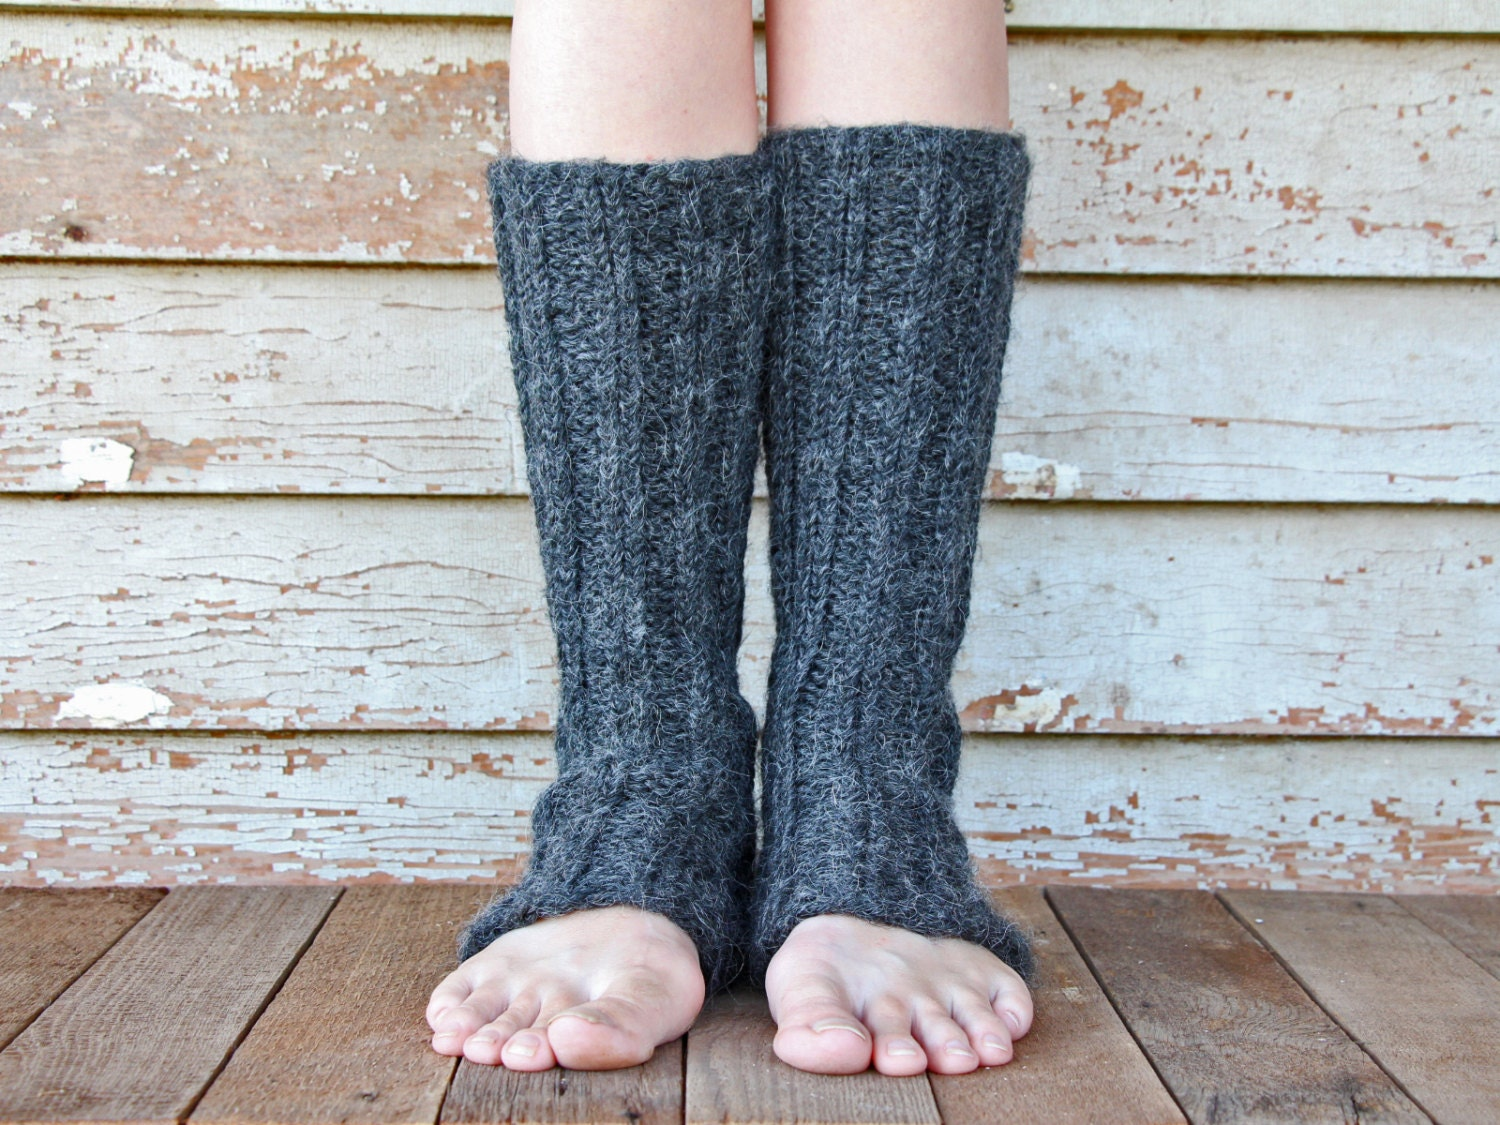 Yoga Leg Warmers Knitting Pattern : Yoga Dance Leg Warmers Knitting Pattern DISCERNMENT a set